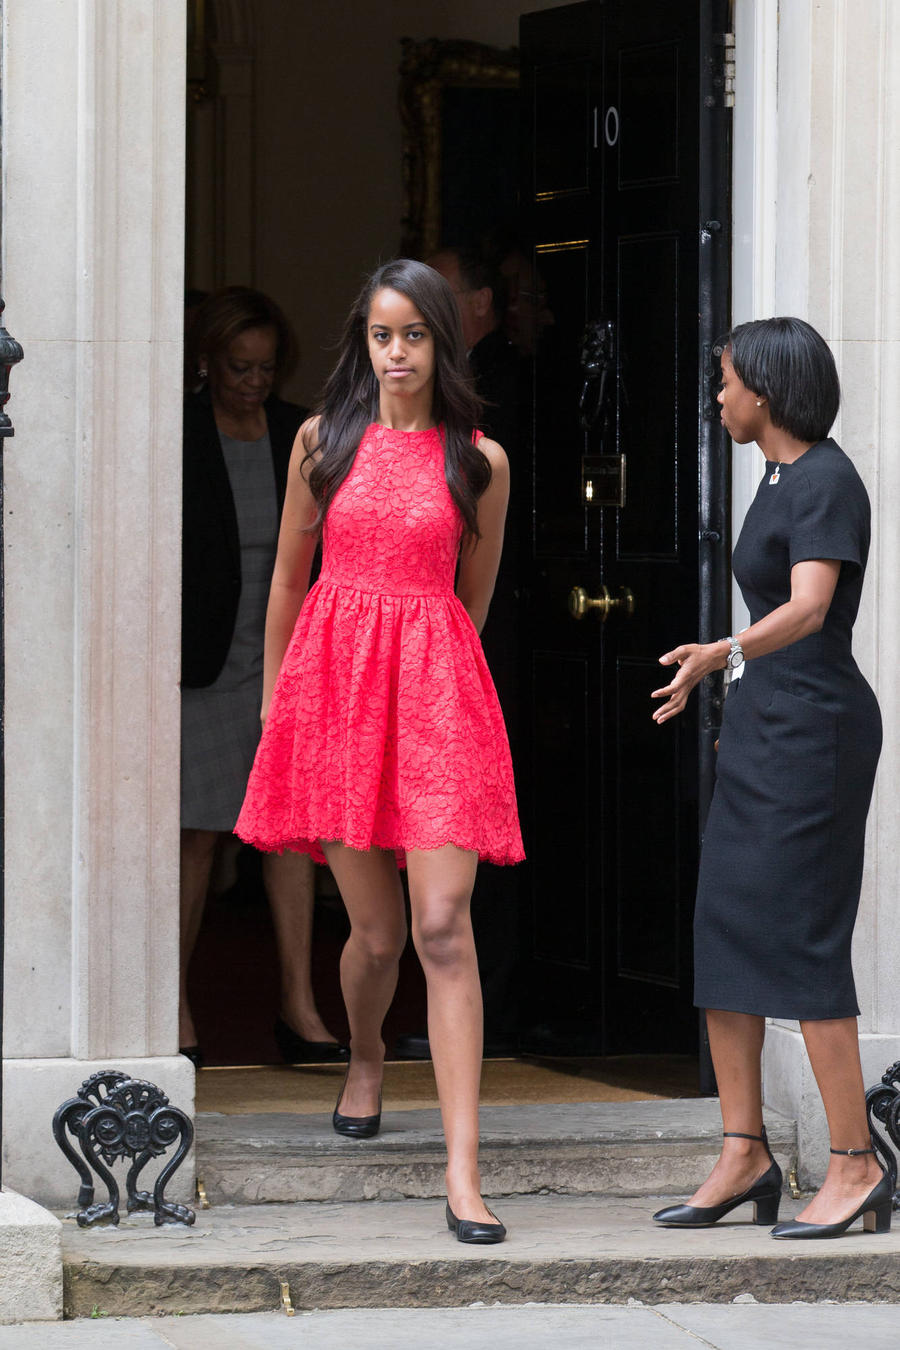 Malia Obama Books Internship With Movie Mogul Harvey Weinstein - Report